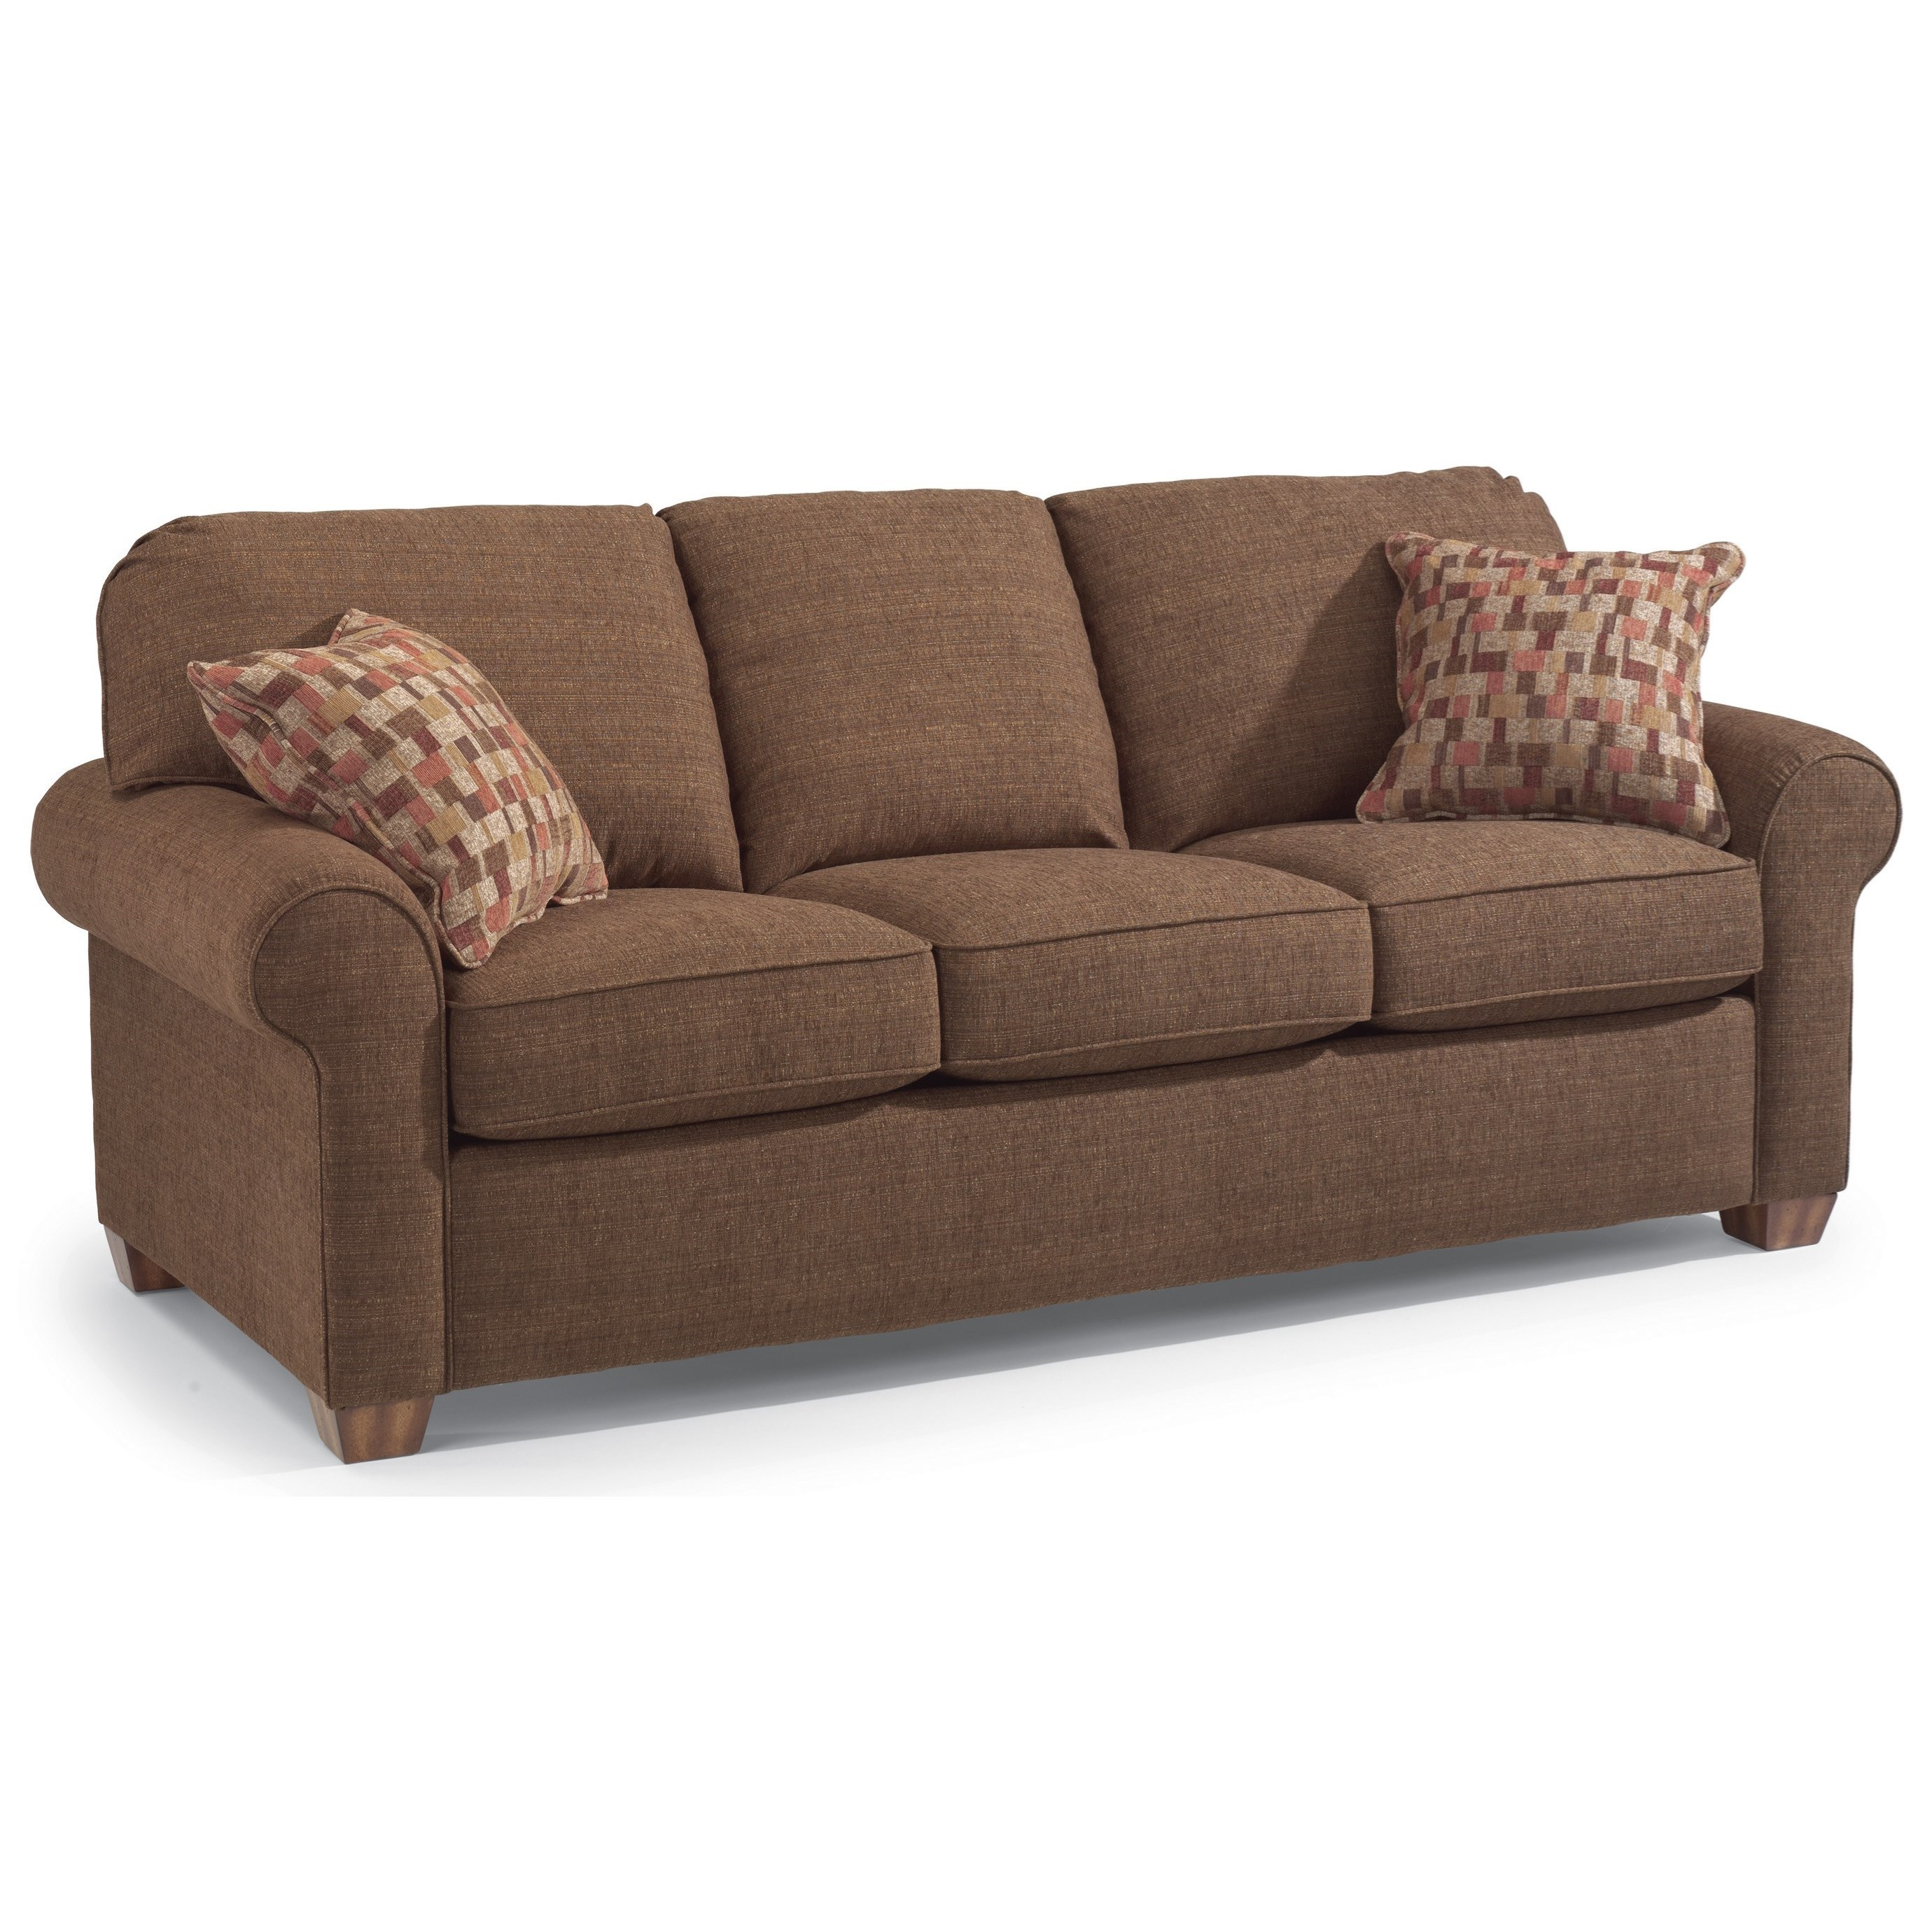 Flexsteel Thornton Stationary Sofa ...